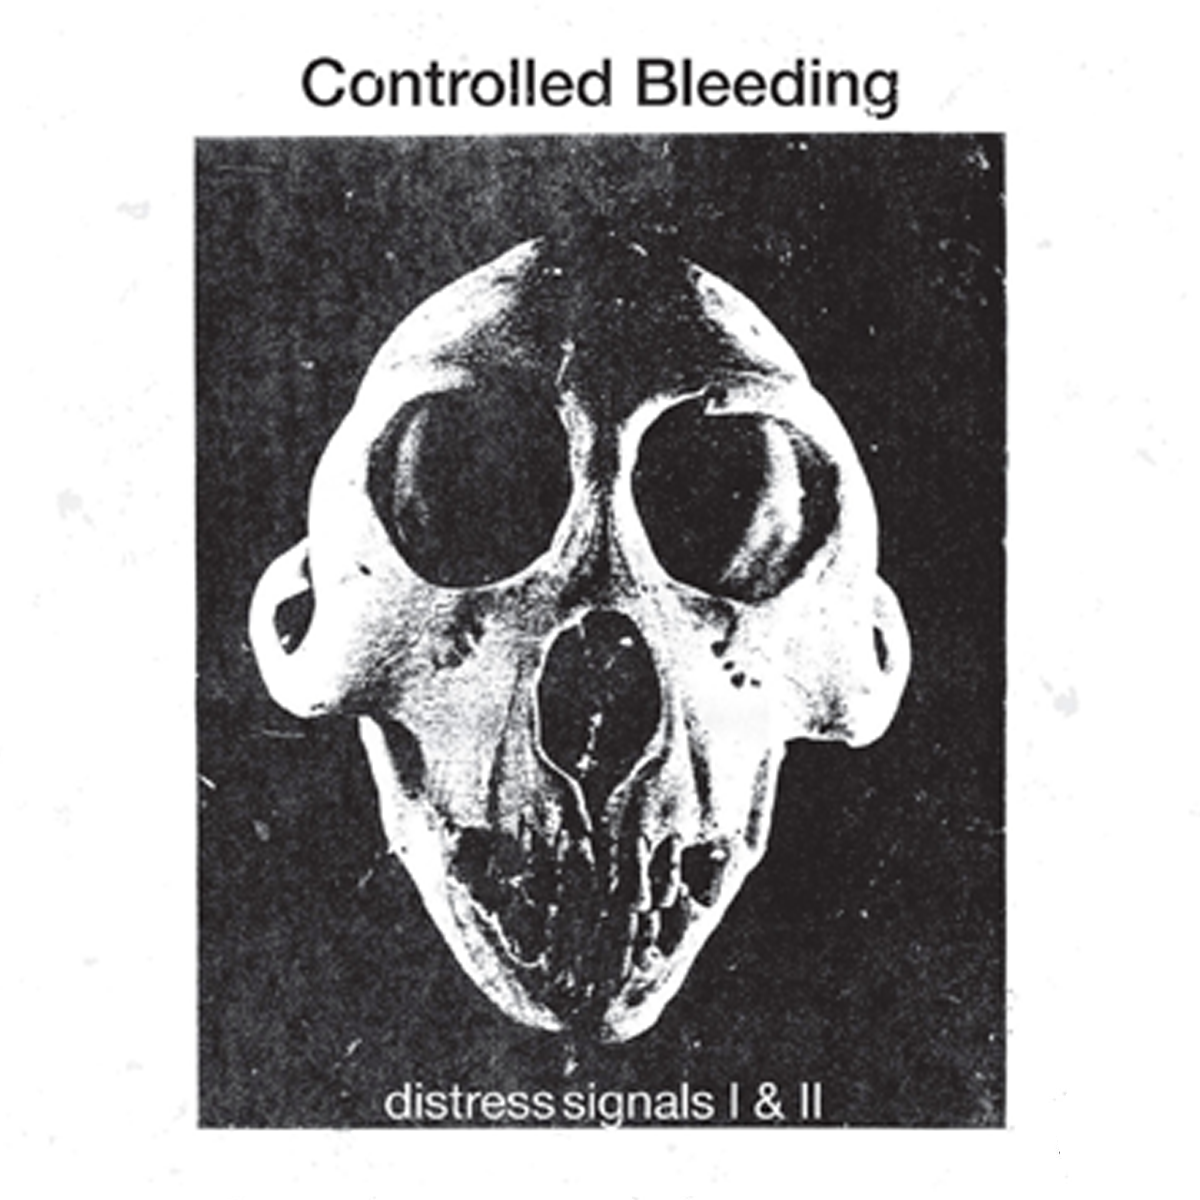 Controlled Bleeding - Distress Signals